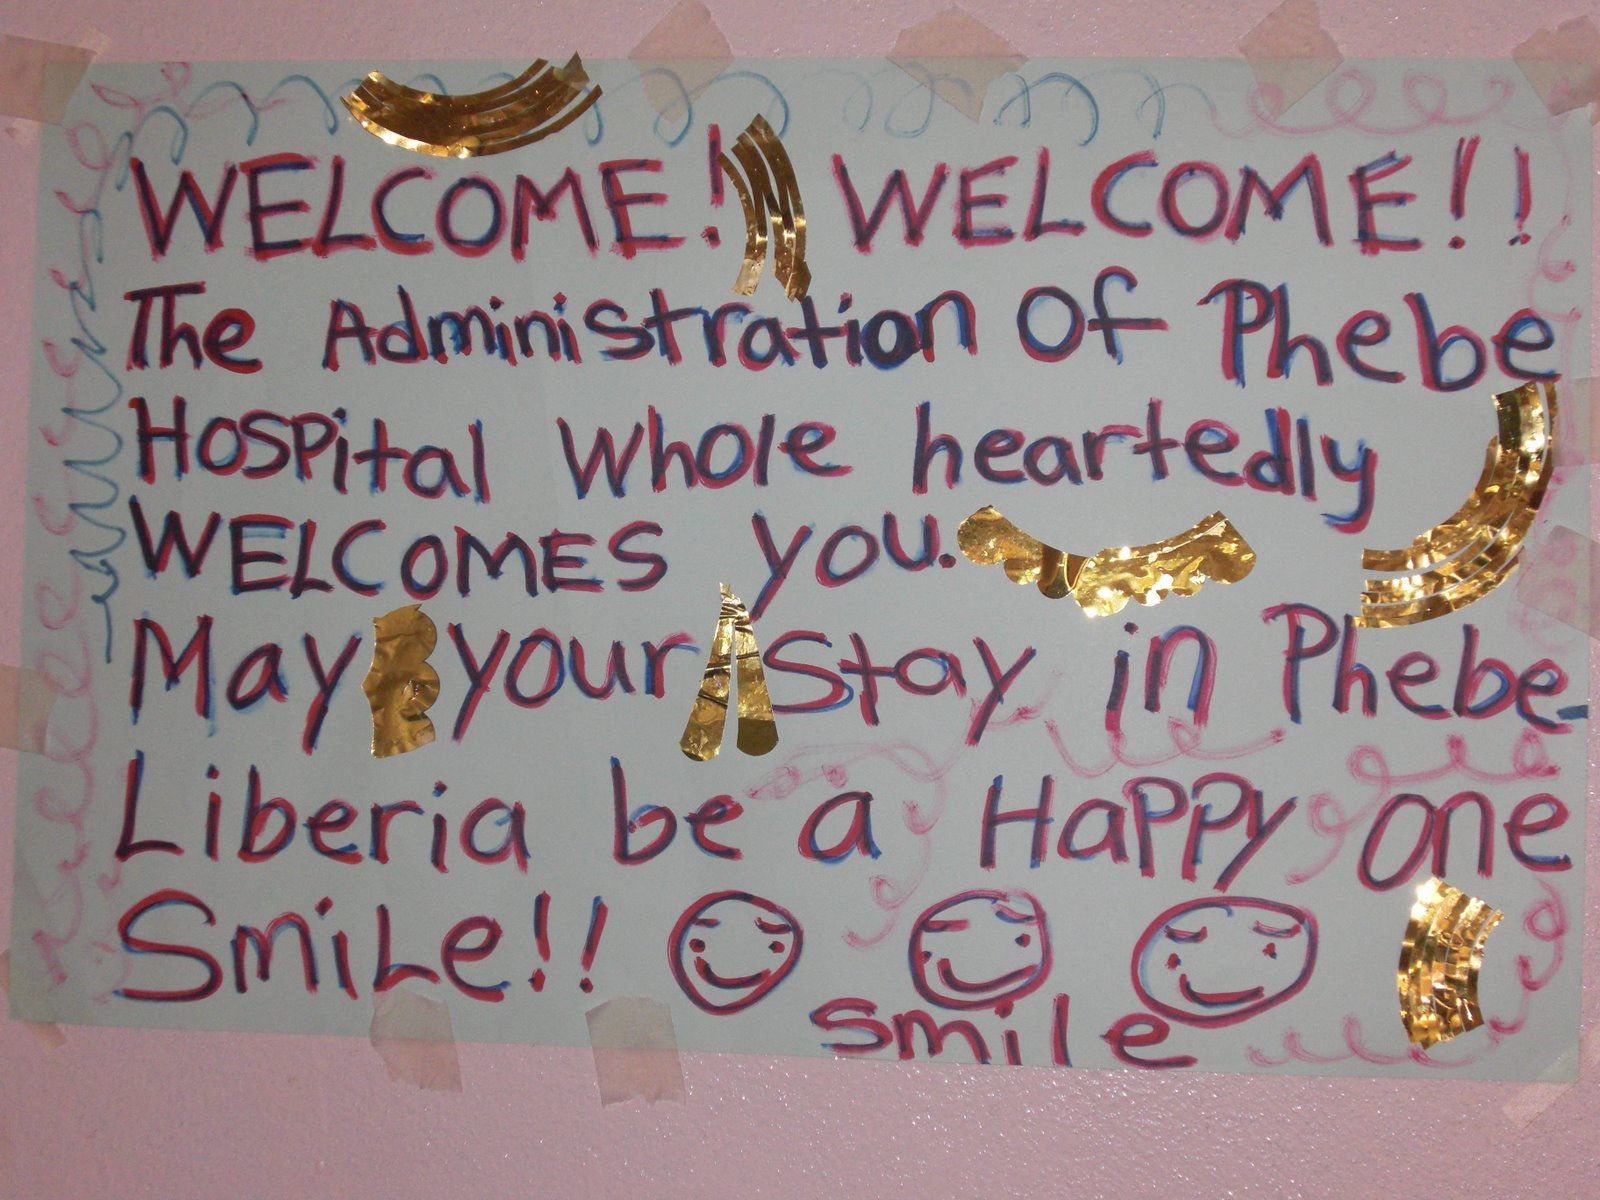 A welcome note that the SEE volunteer sight-restoring team received in Phebe, Liberia. #givesight #smile www.seeintl.org